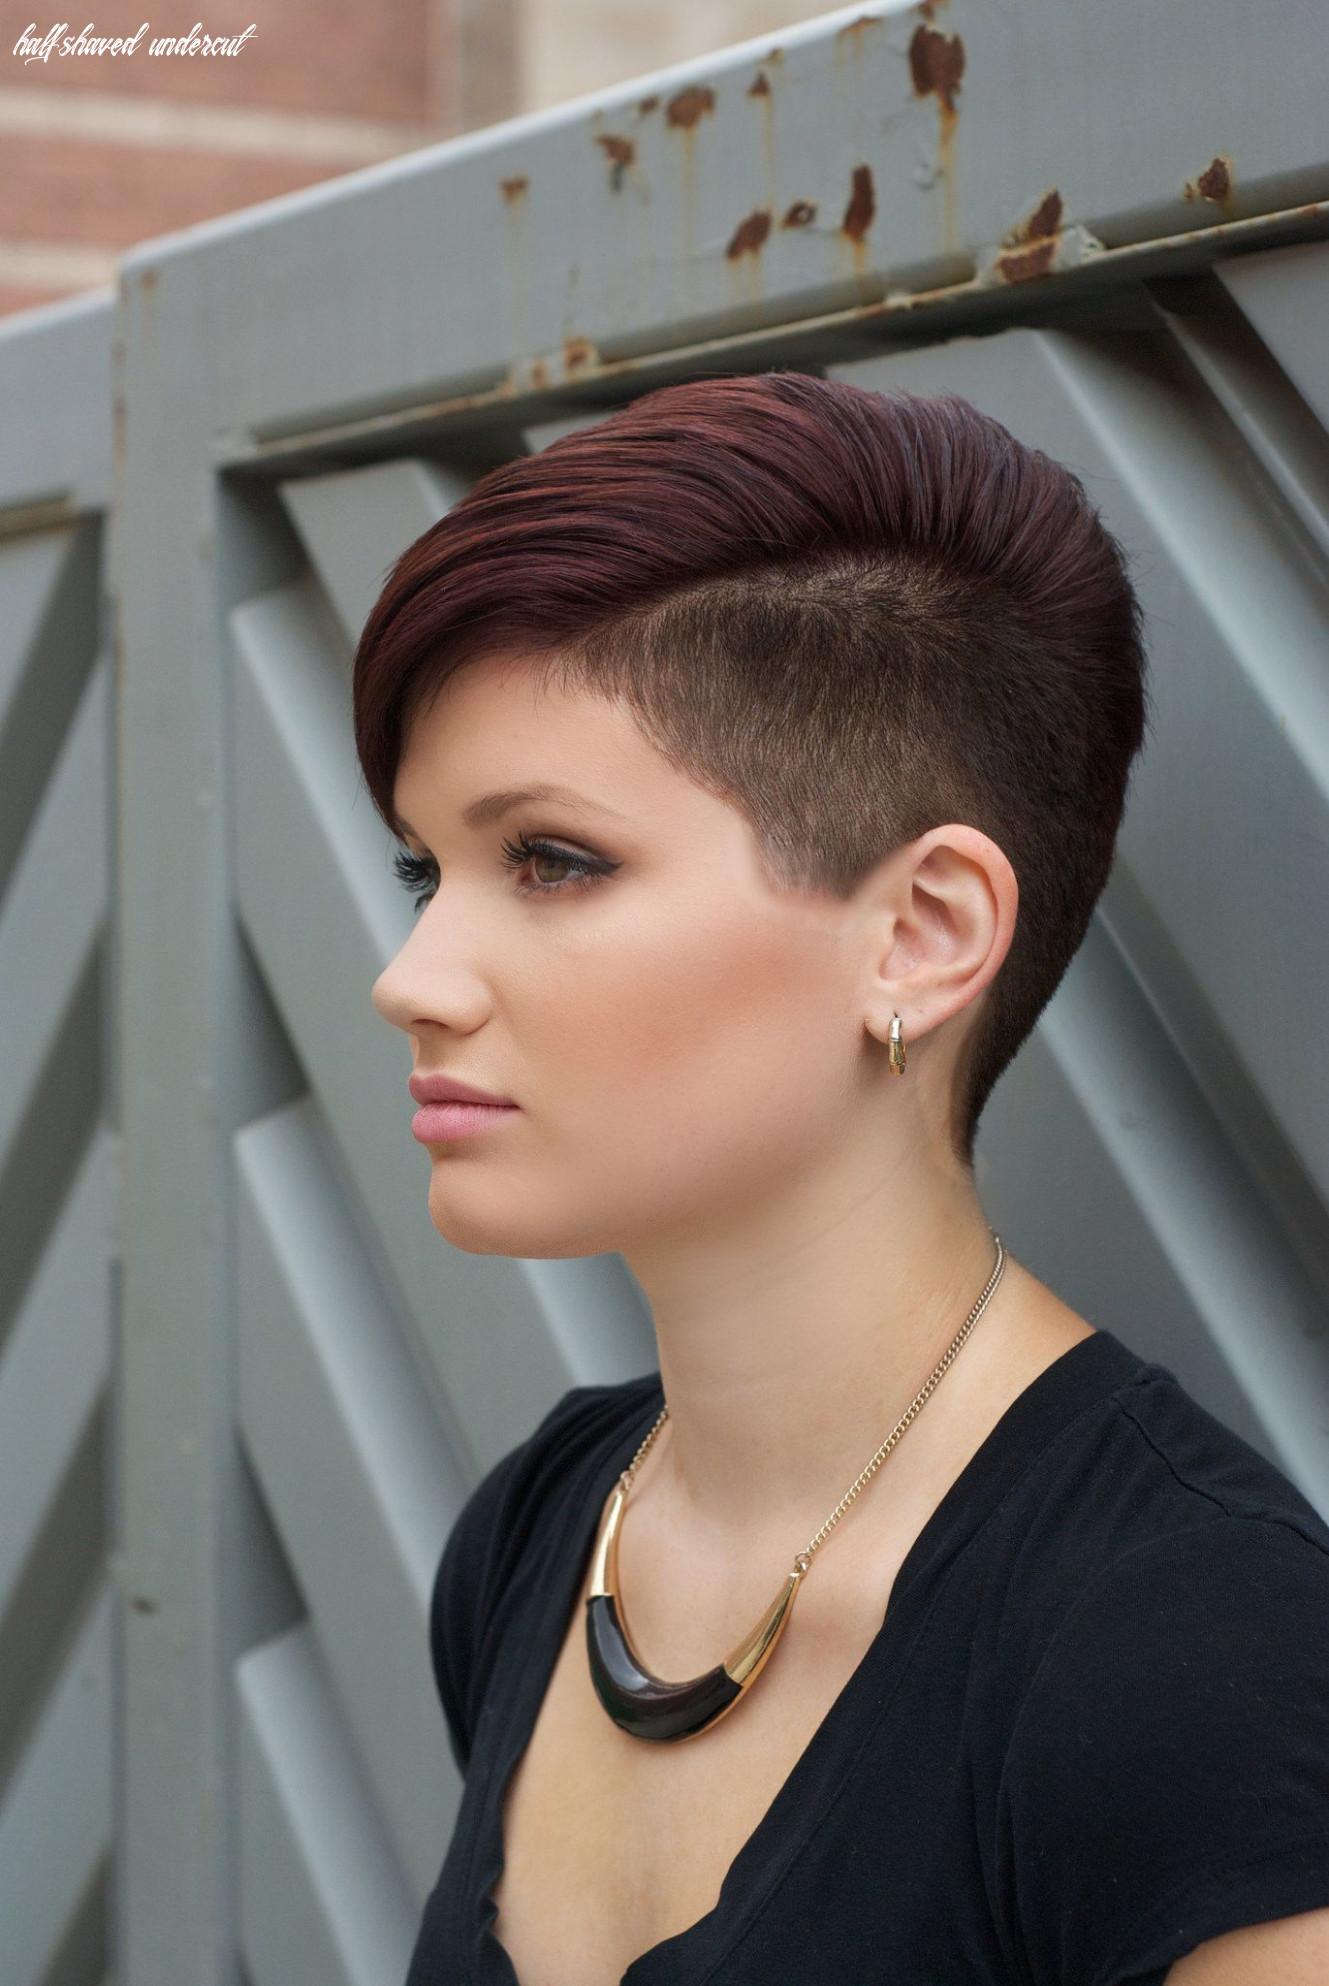 Pin on one side shaved head/half shaved/undercut half shaved undercut